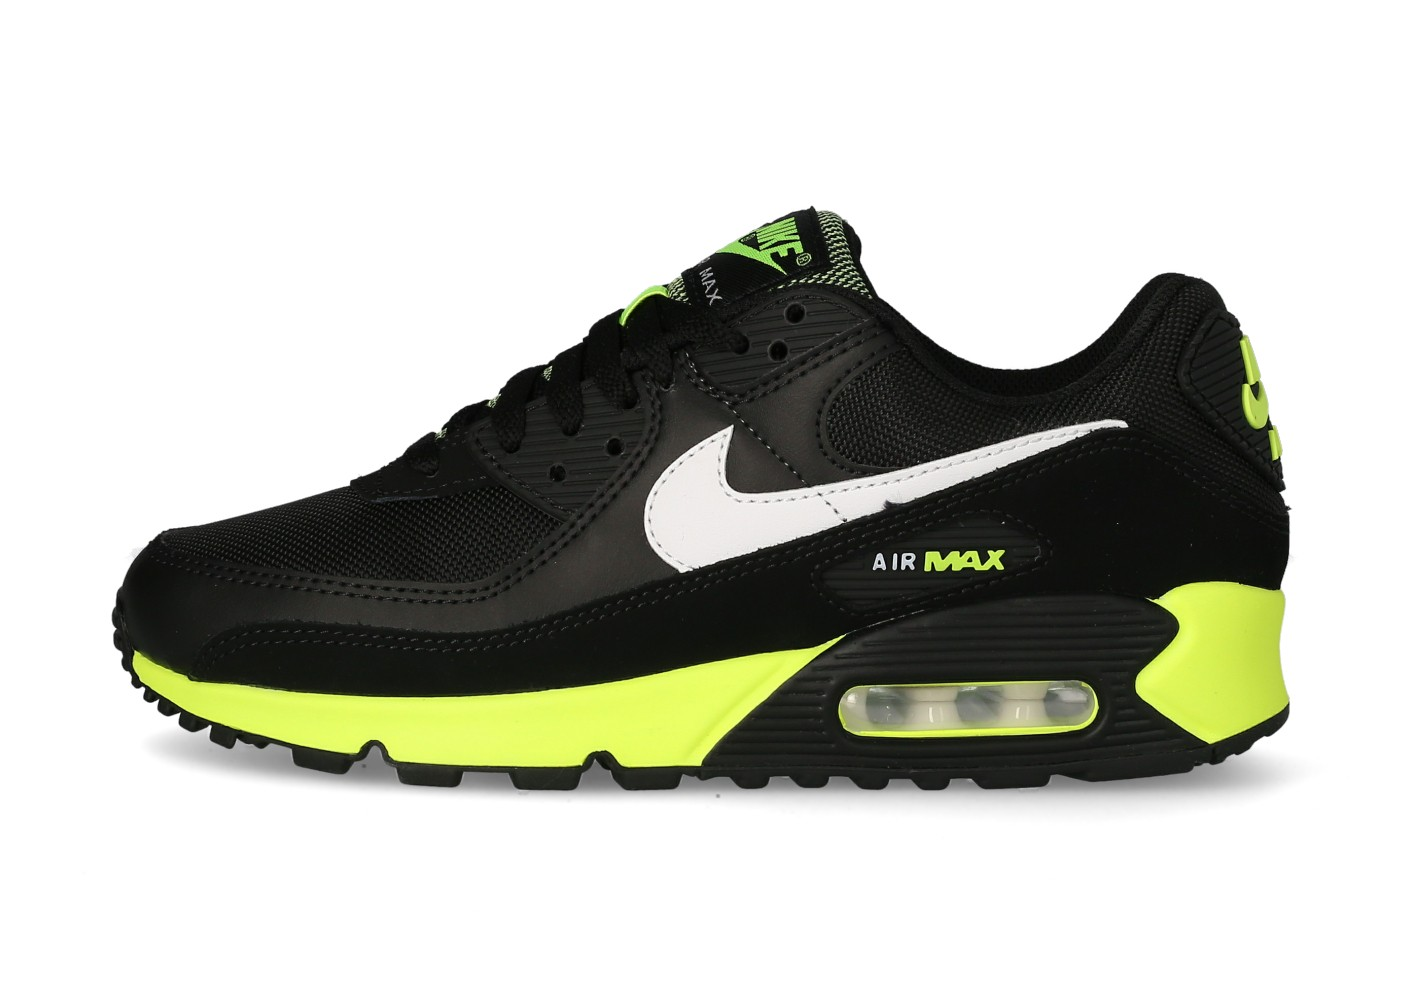 Nike Air Max 90 Homme noire hot lime - Chaussures Baskets homme ...